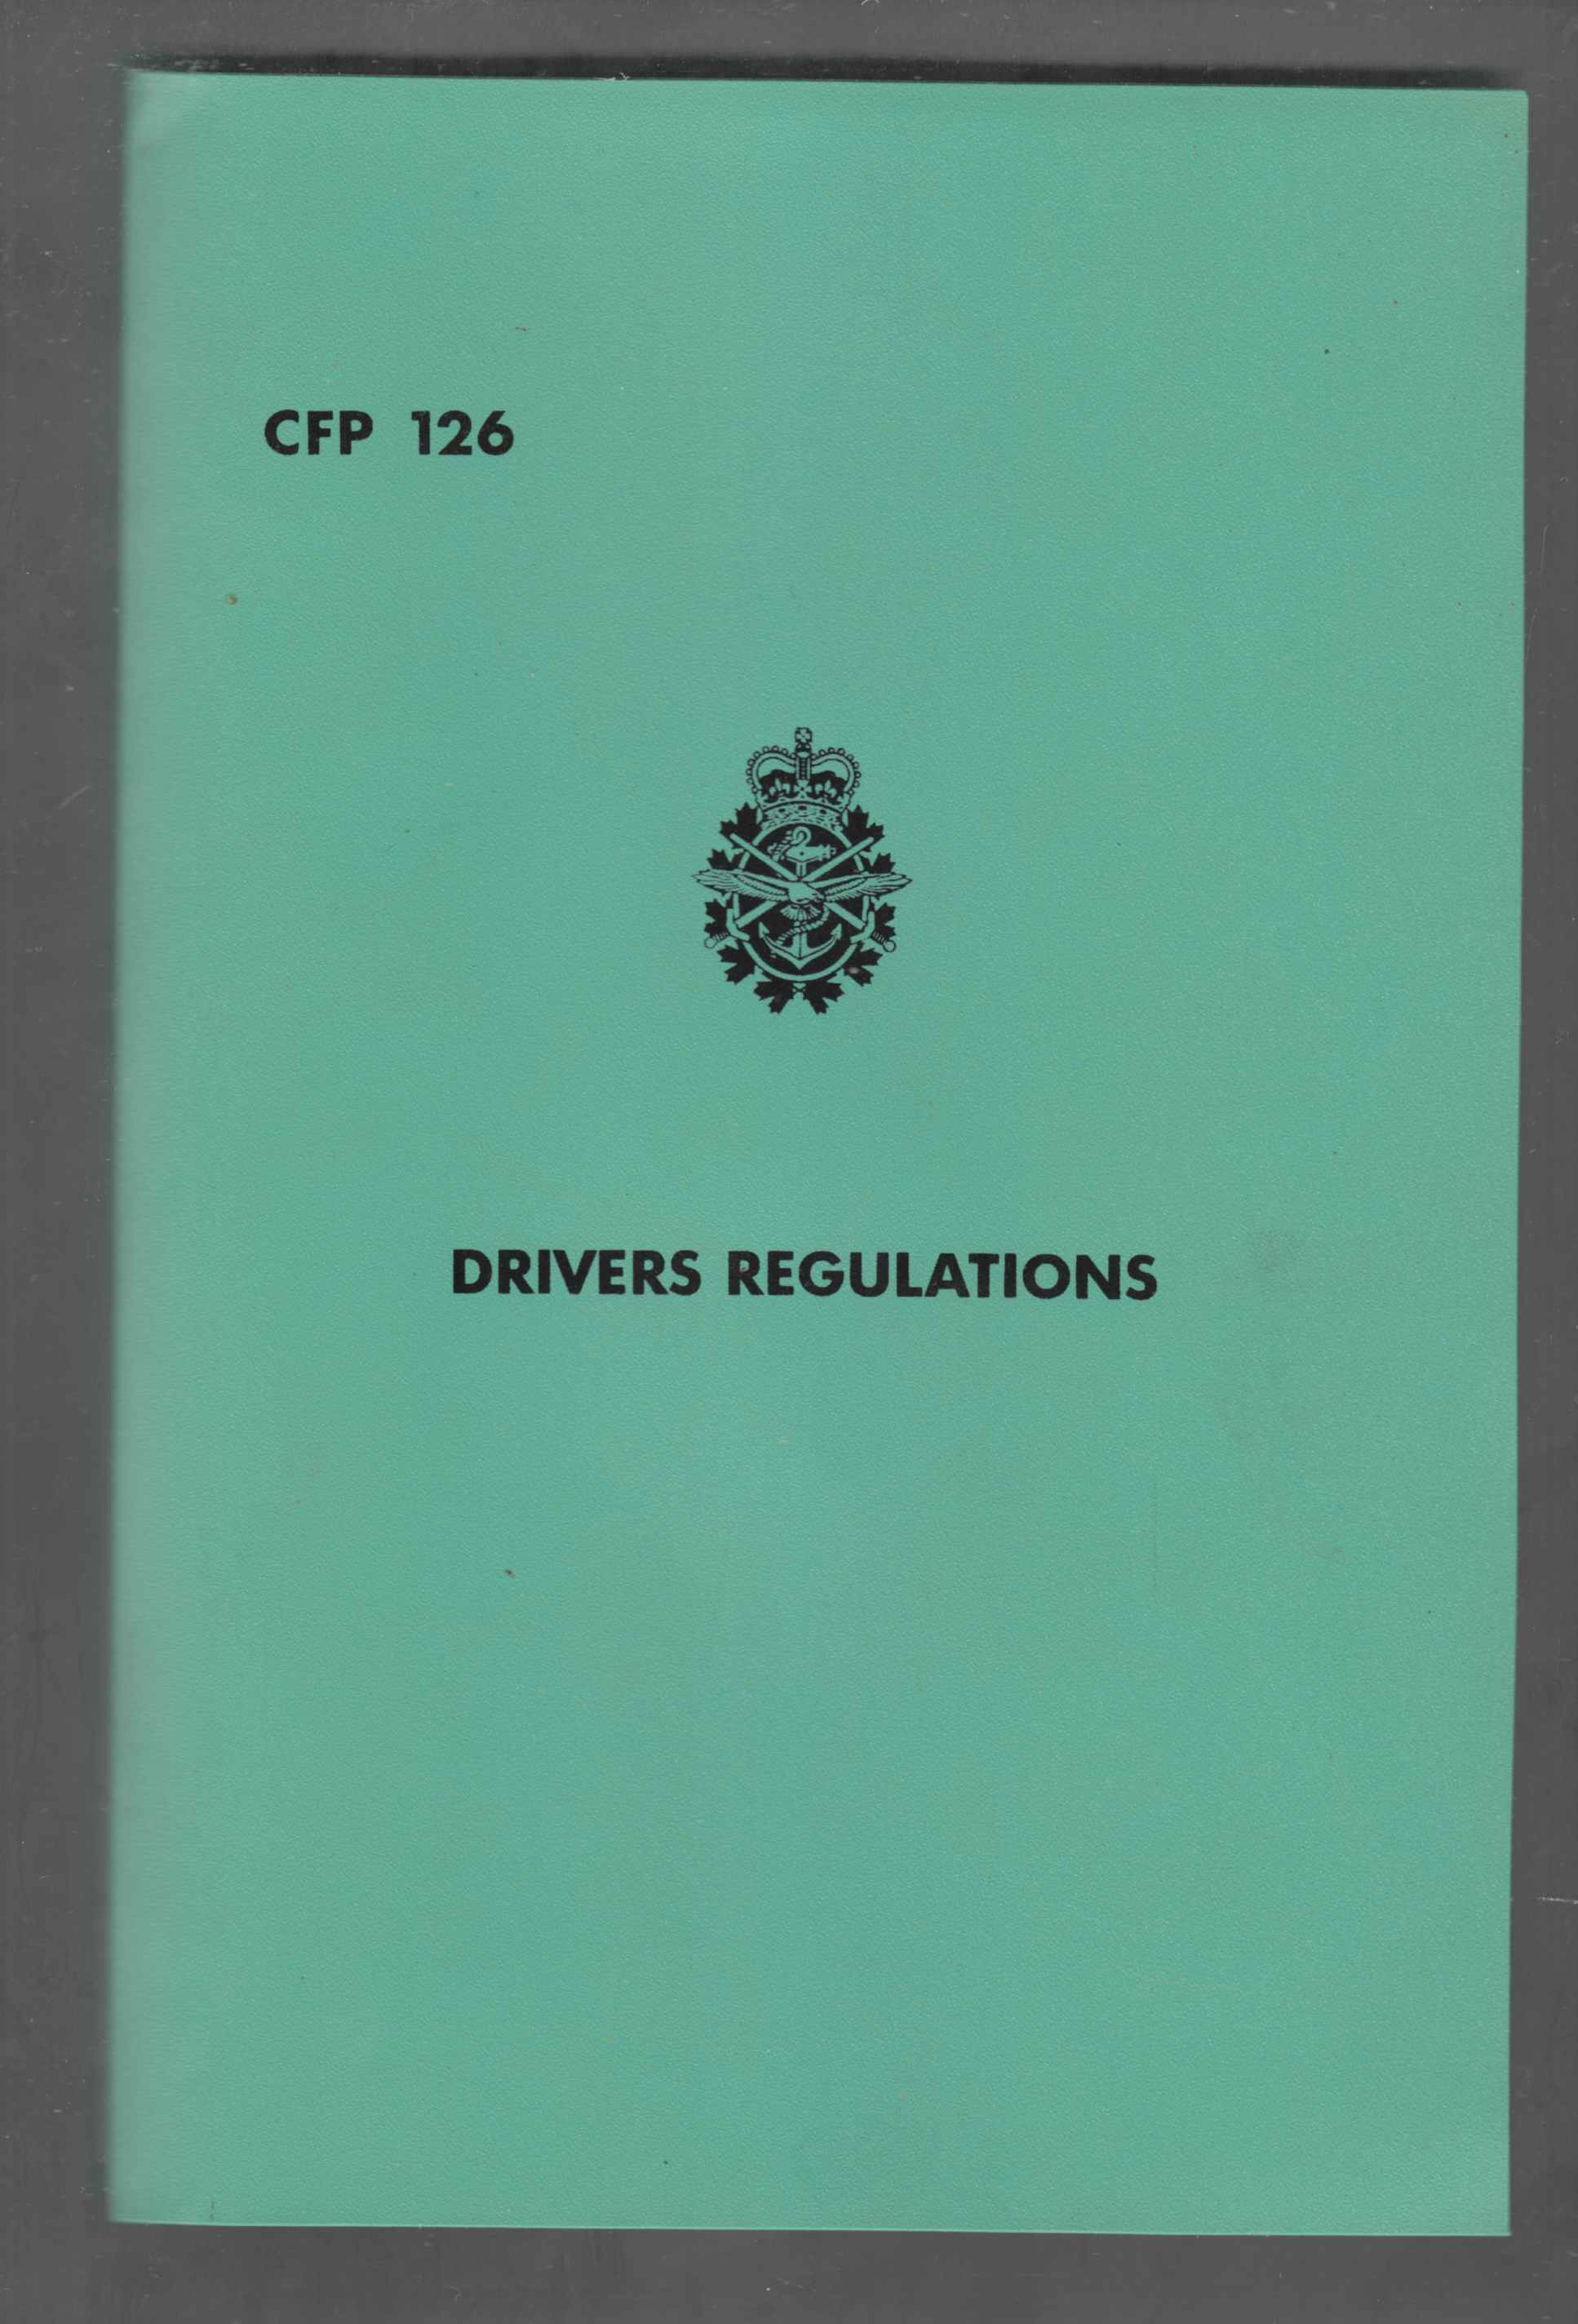 Image for Drivers Regulations CFP 126